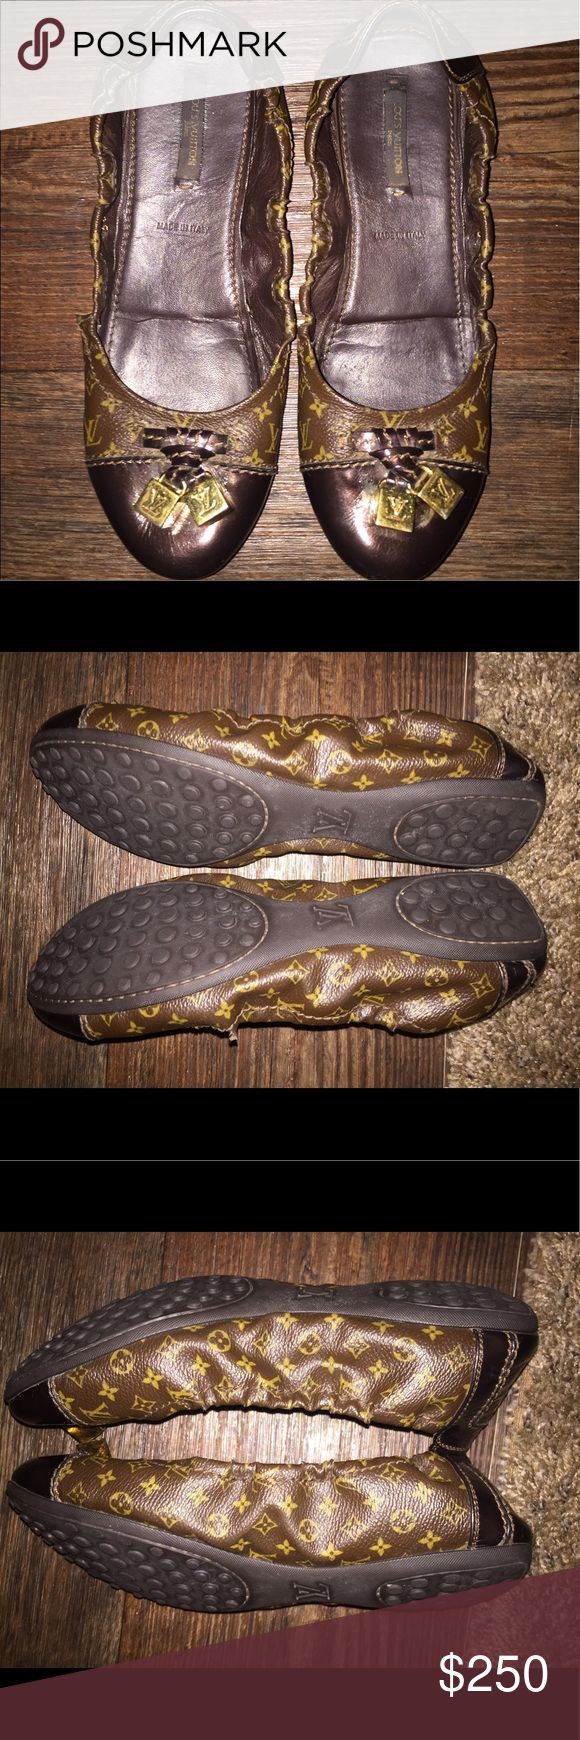 Authentic Louis Vuitton Ballet Flats 💥PRICEDROP💥 AUTHENTIC Louis Vuitton Ballerina Flats Size 38 that is Supposed to Be A 8 But There Shoes Run Small So Id Say More Like A 7 They've Been Gently Used Only Wore A Few Times Cause They Was Too Small 😭 Purchased September 2011 In Las Vegas They Came Out That Fall They Still Have Similar Ones In Store Now So There Never Going Out Of Style!!! Louis Vuitton Shoes Flats & Loafers